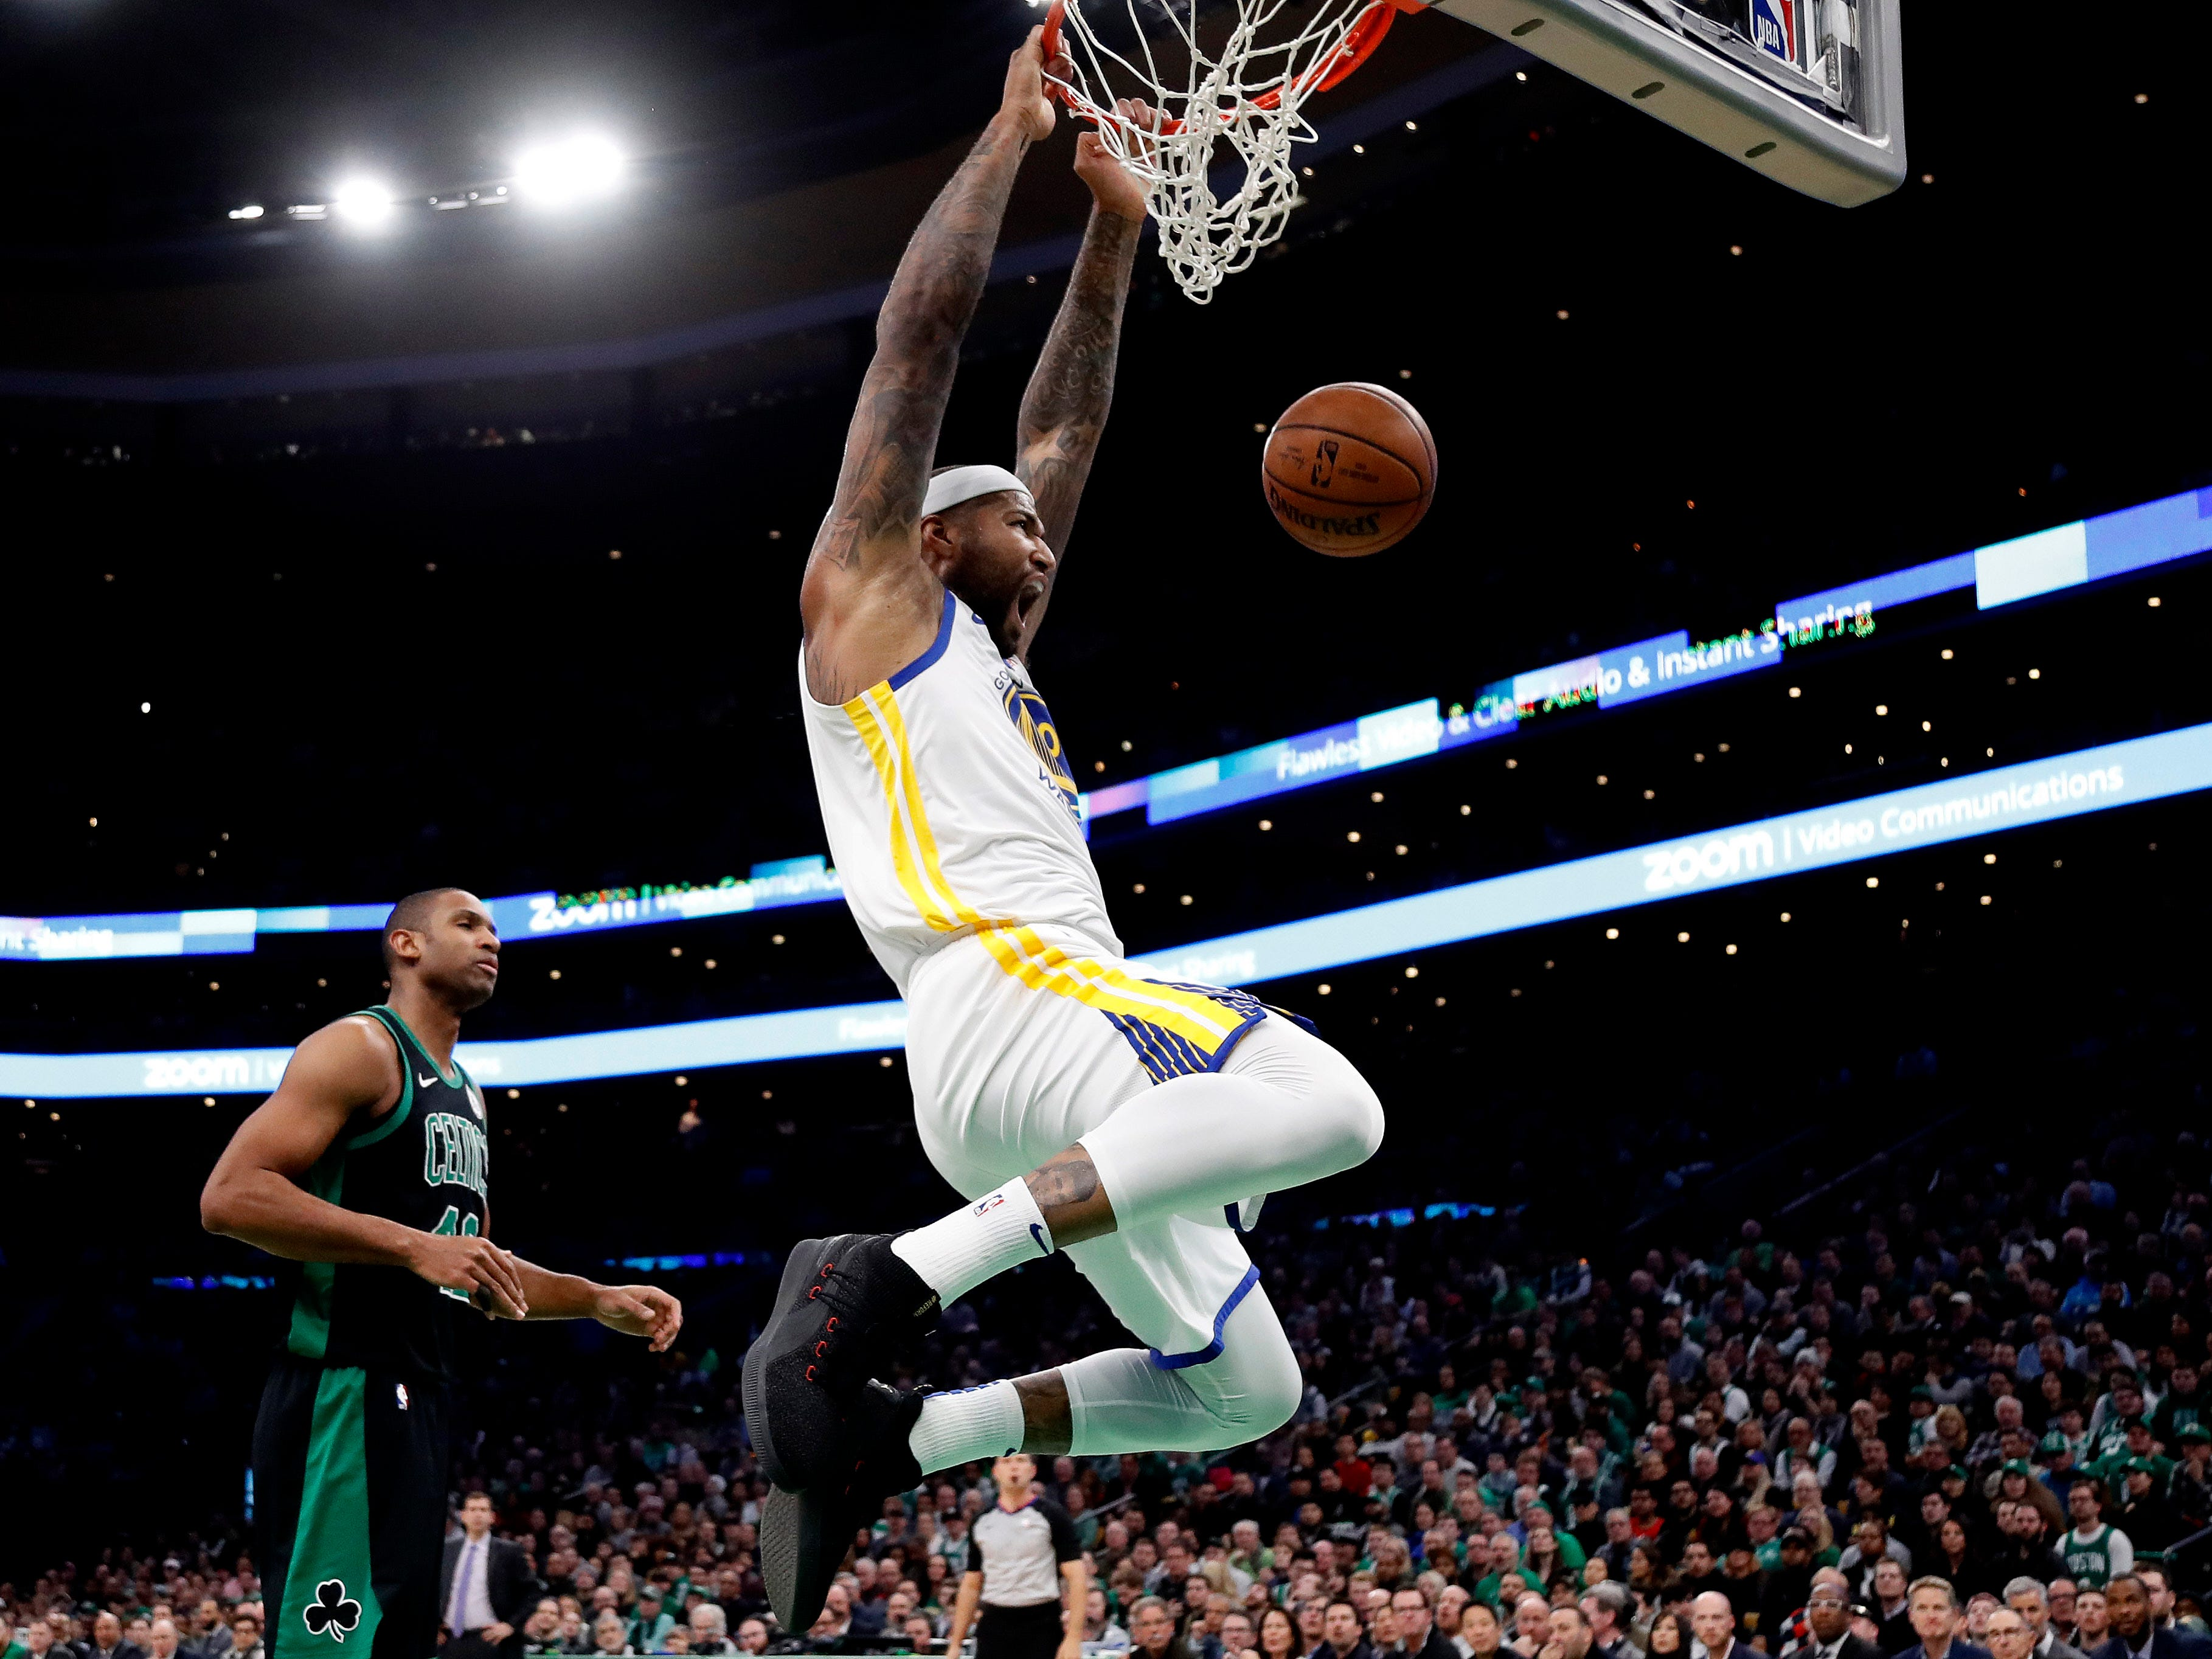 Jan. 26: Warriors center DeMarcus Cousins throws down a thunderous two-handed slam against the Celtics.